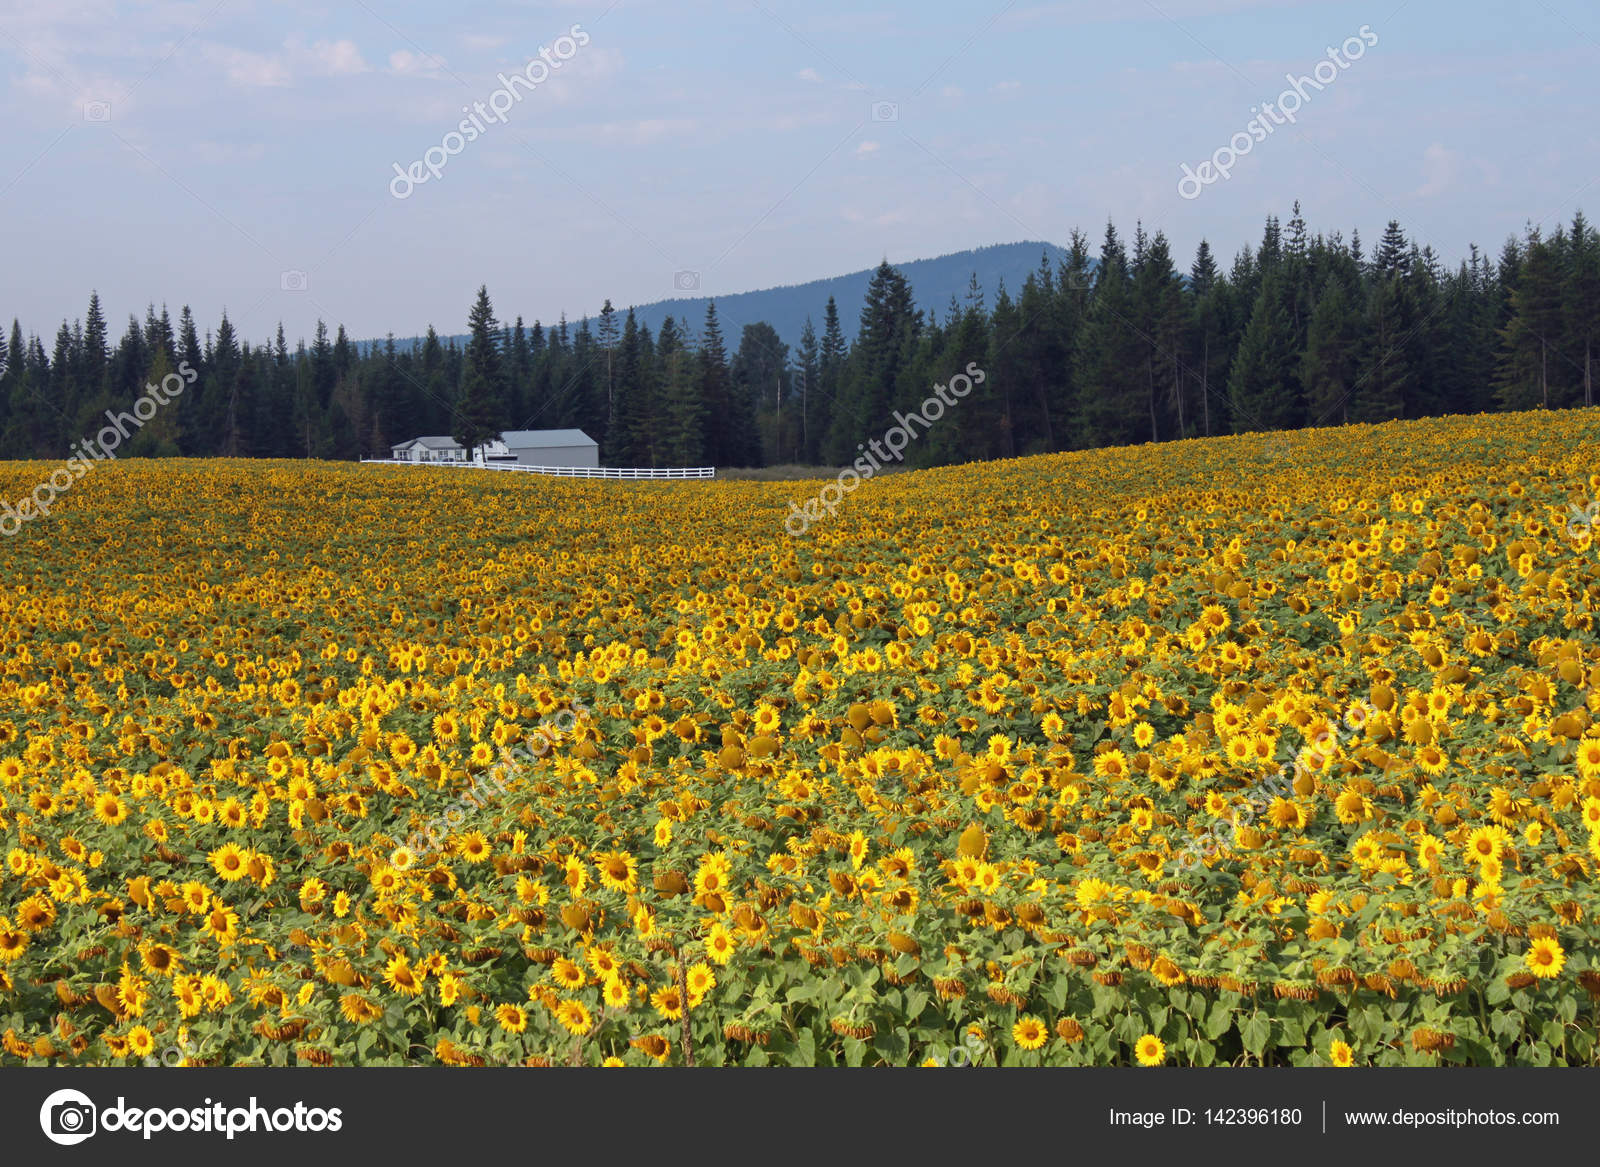 White Farmhouse In A Field Of Yellow Sunflowers Stock Photo